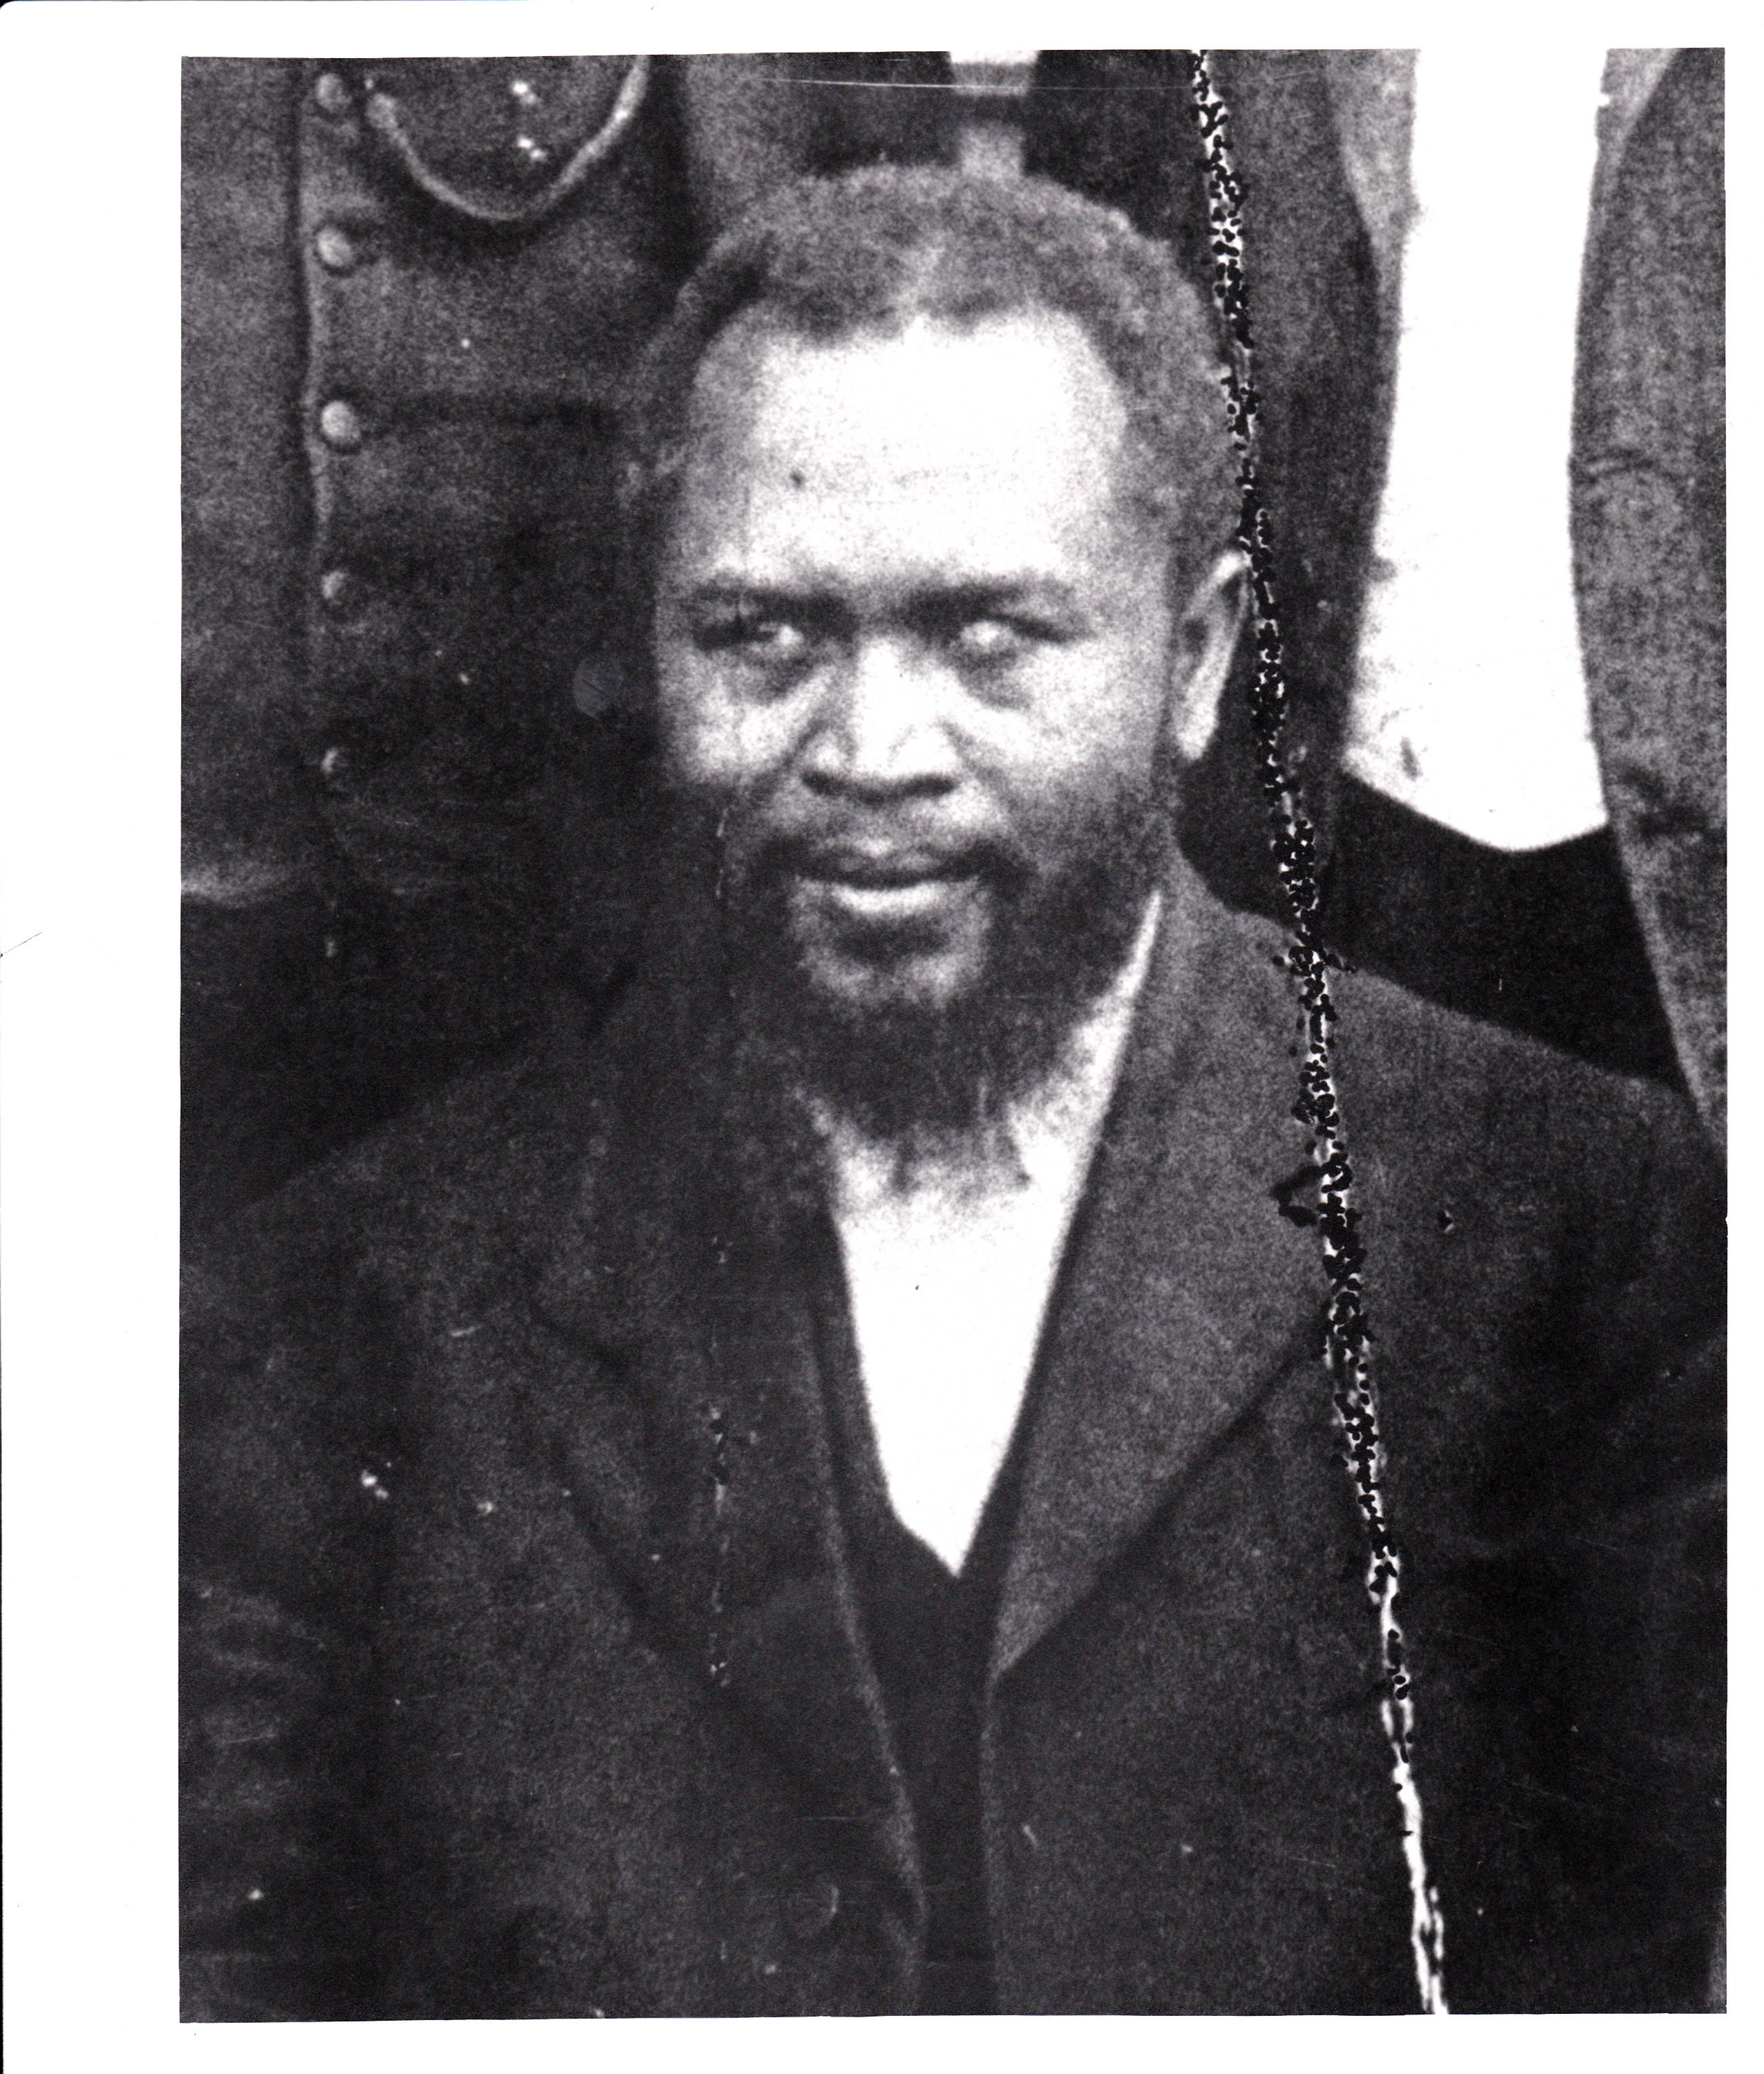 7. William Seymour